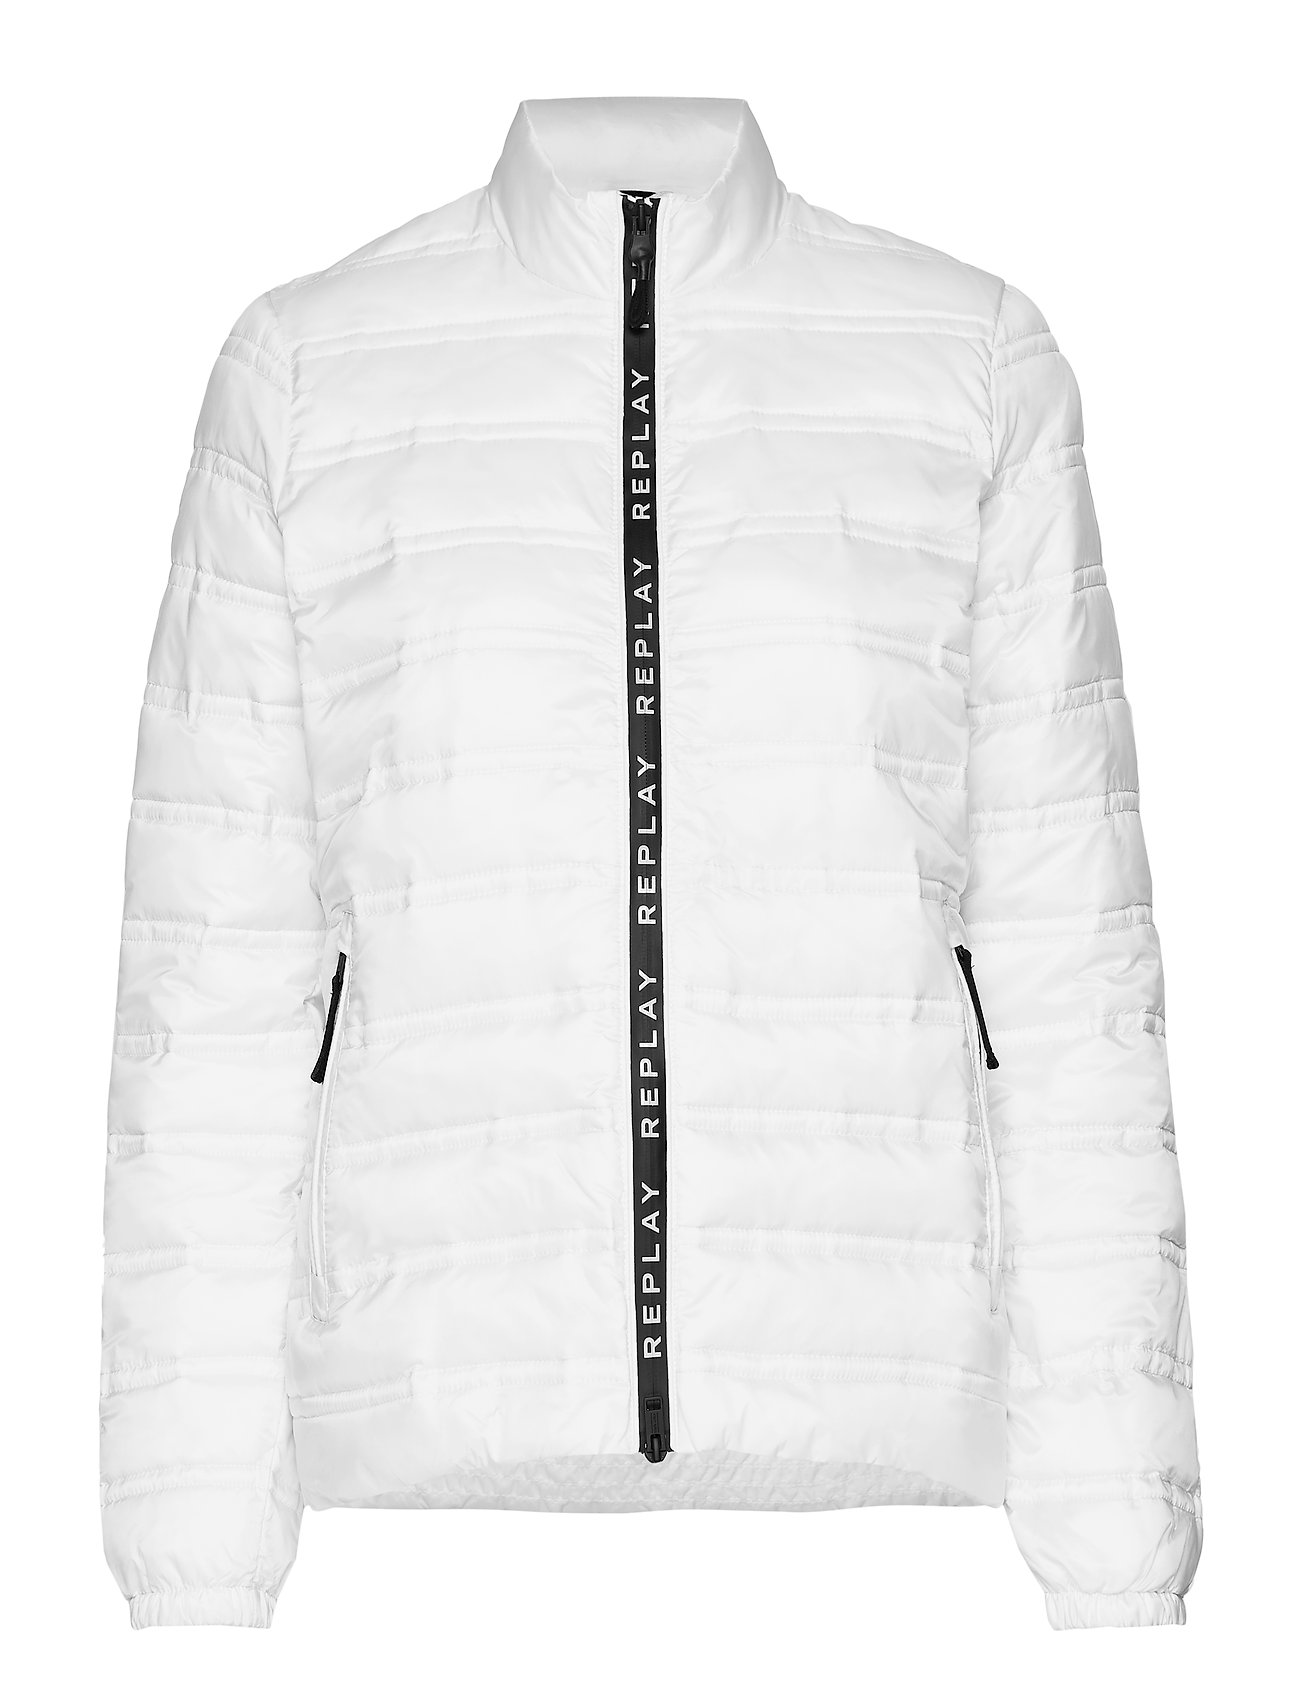 Replay Jacket - BUTTER WHITE